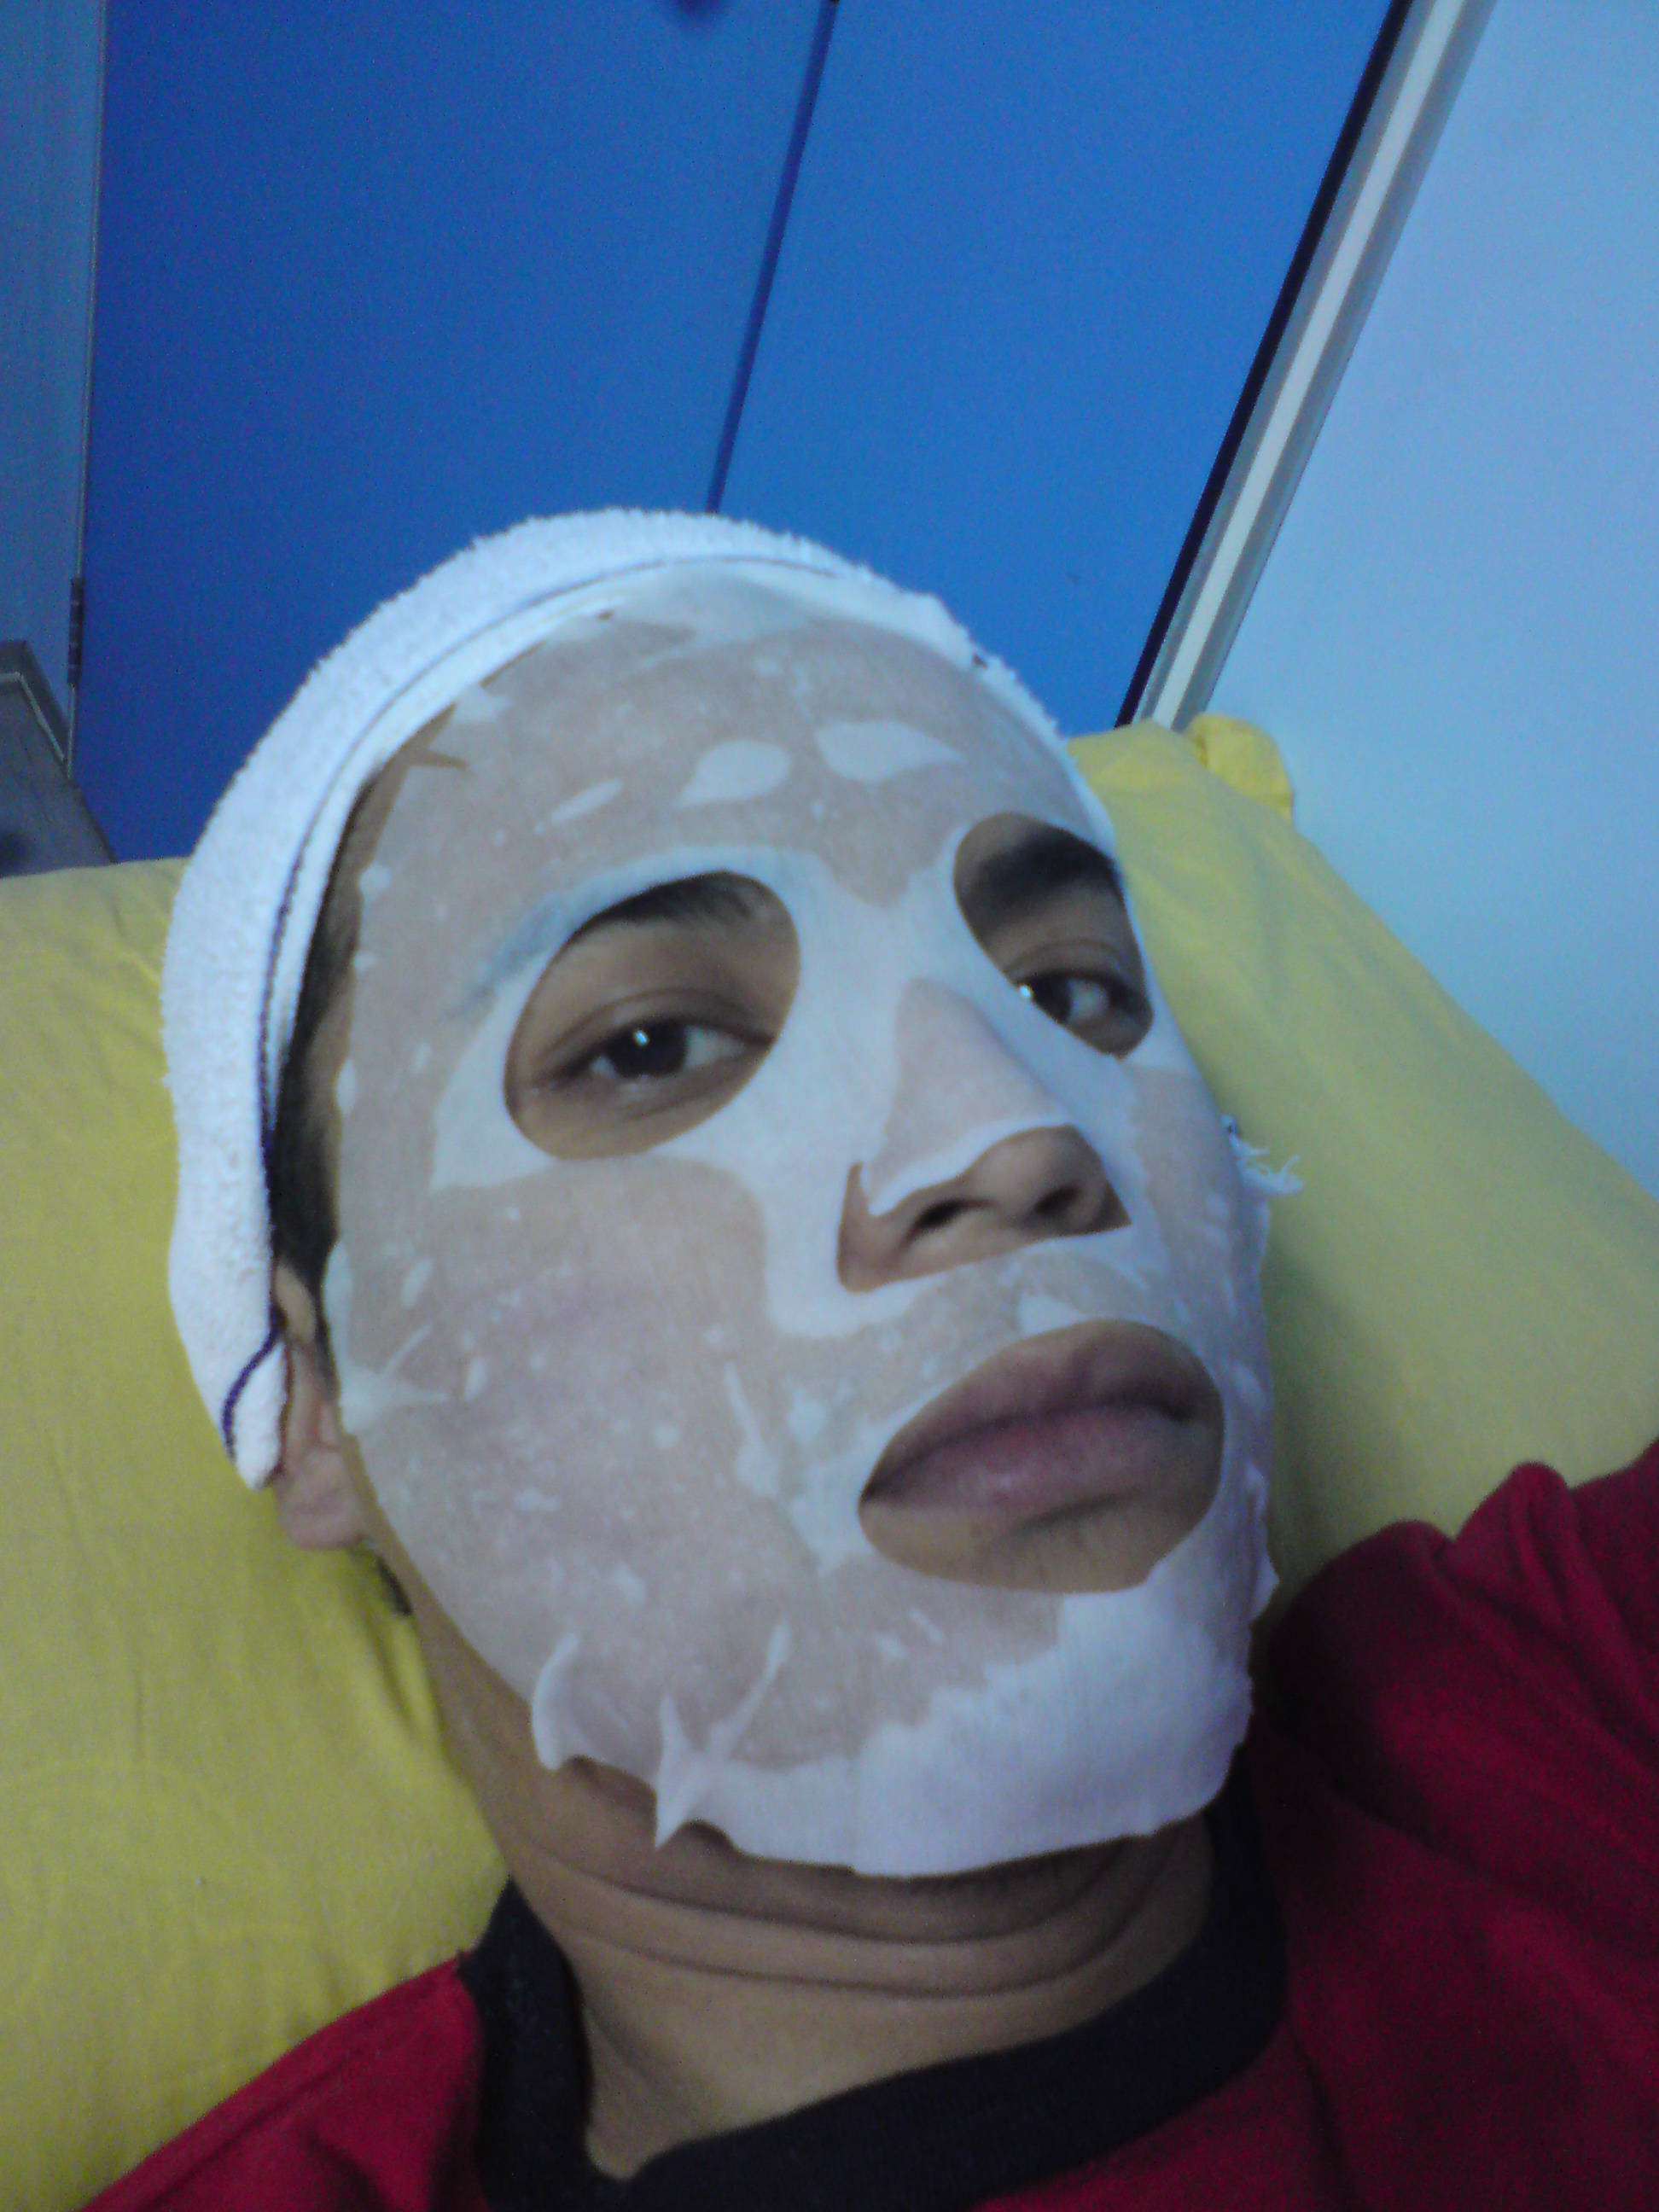 FOURTH STEP - Neutrogena icy cold mask.i felt a bit burning sensation after the vacuum, the mask really help.. do I look fat?